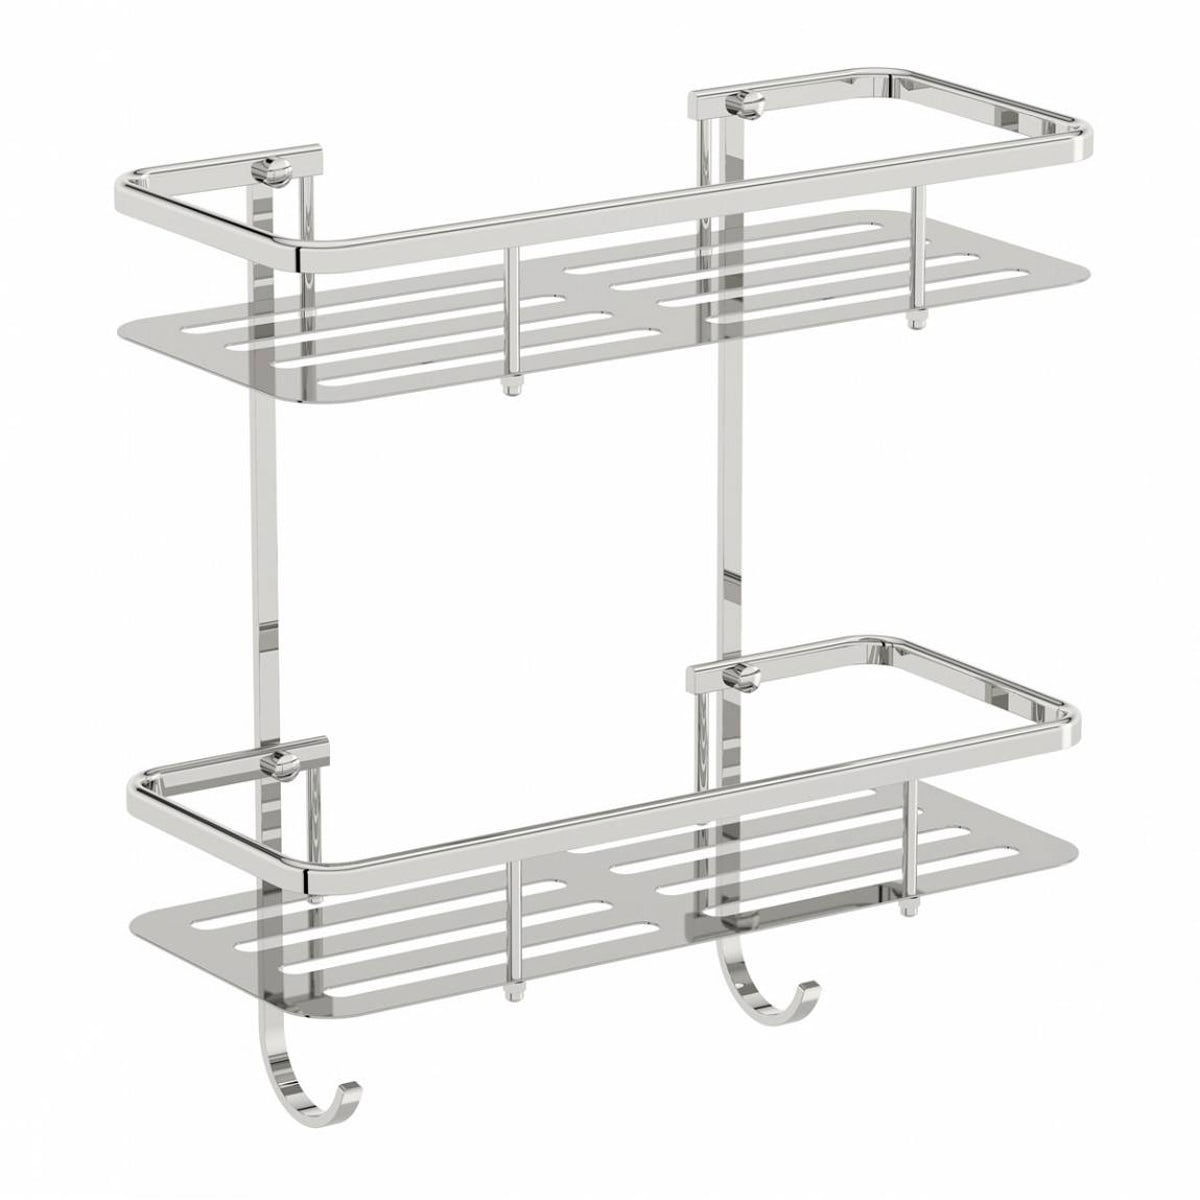 Wall Mounted Shower Caddy - The Best Wall Of 20178